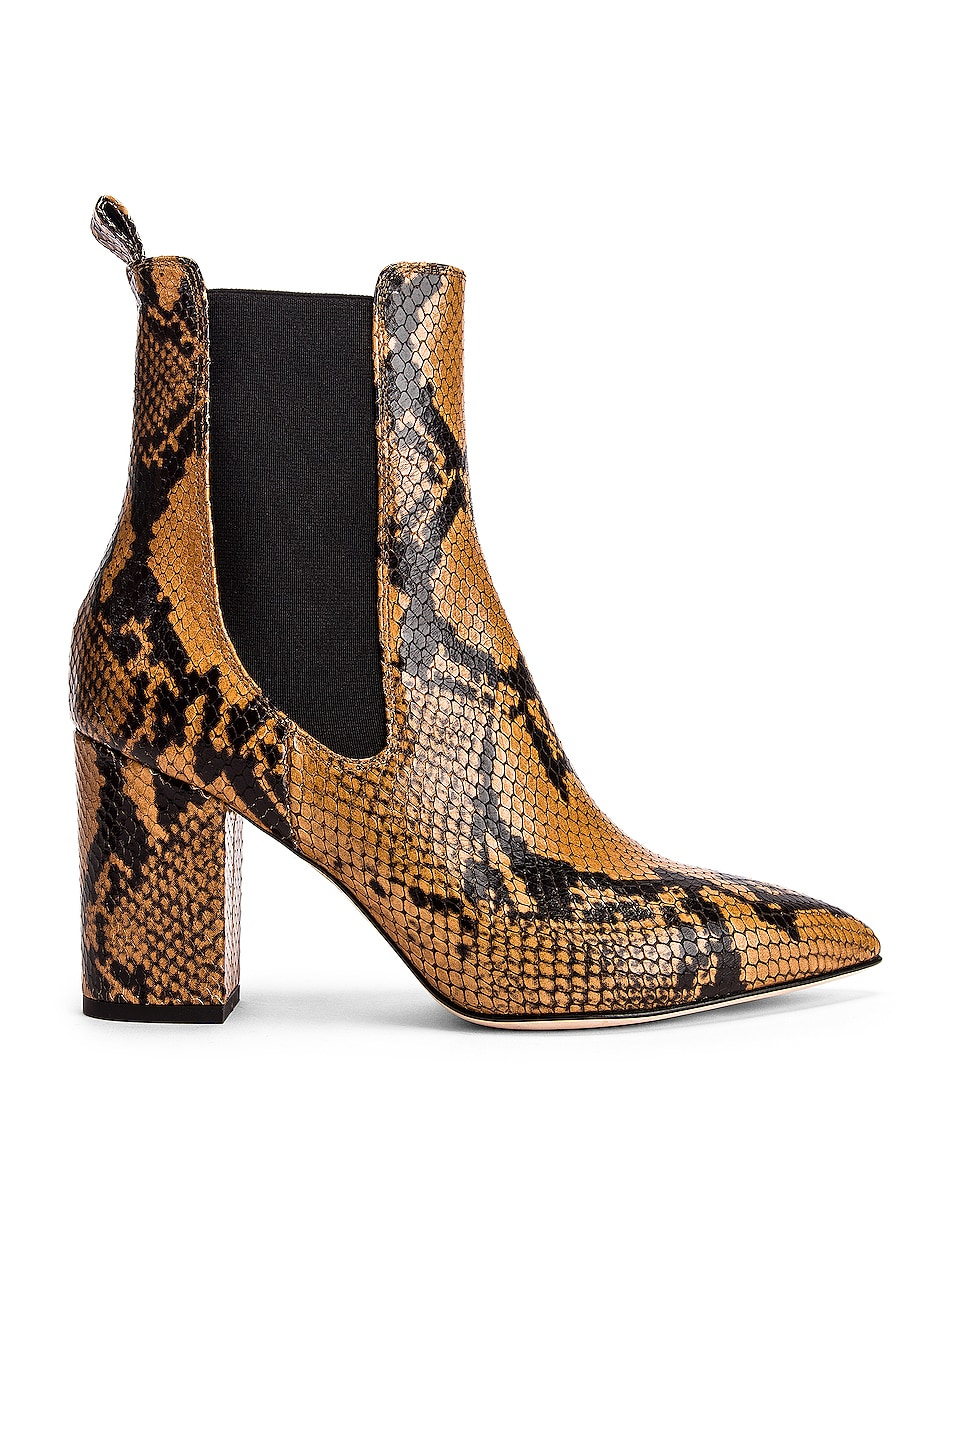 Image 1 of Paris Texas Python Print Ankle Boot in Camel